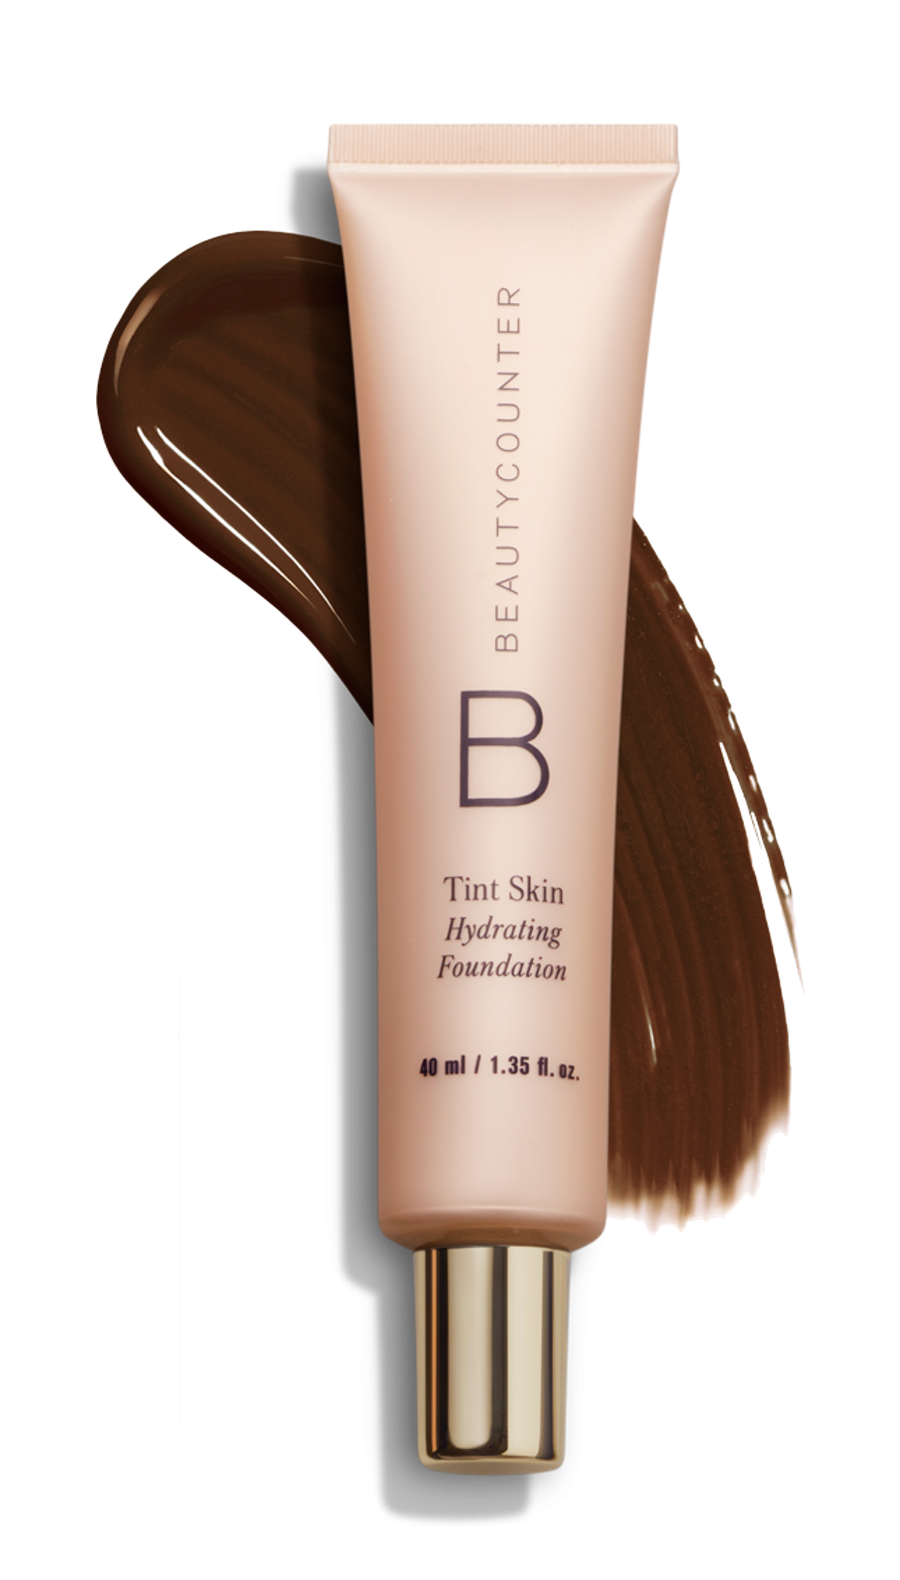 Tint Skin Hydrating Liquid Foundation in Espresso